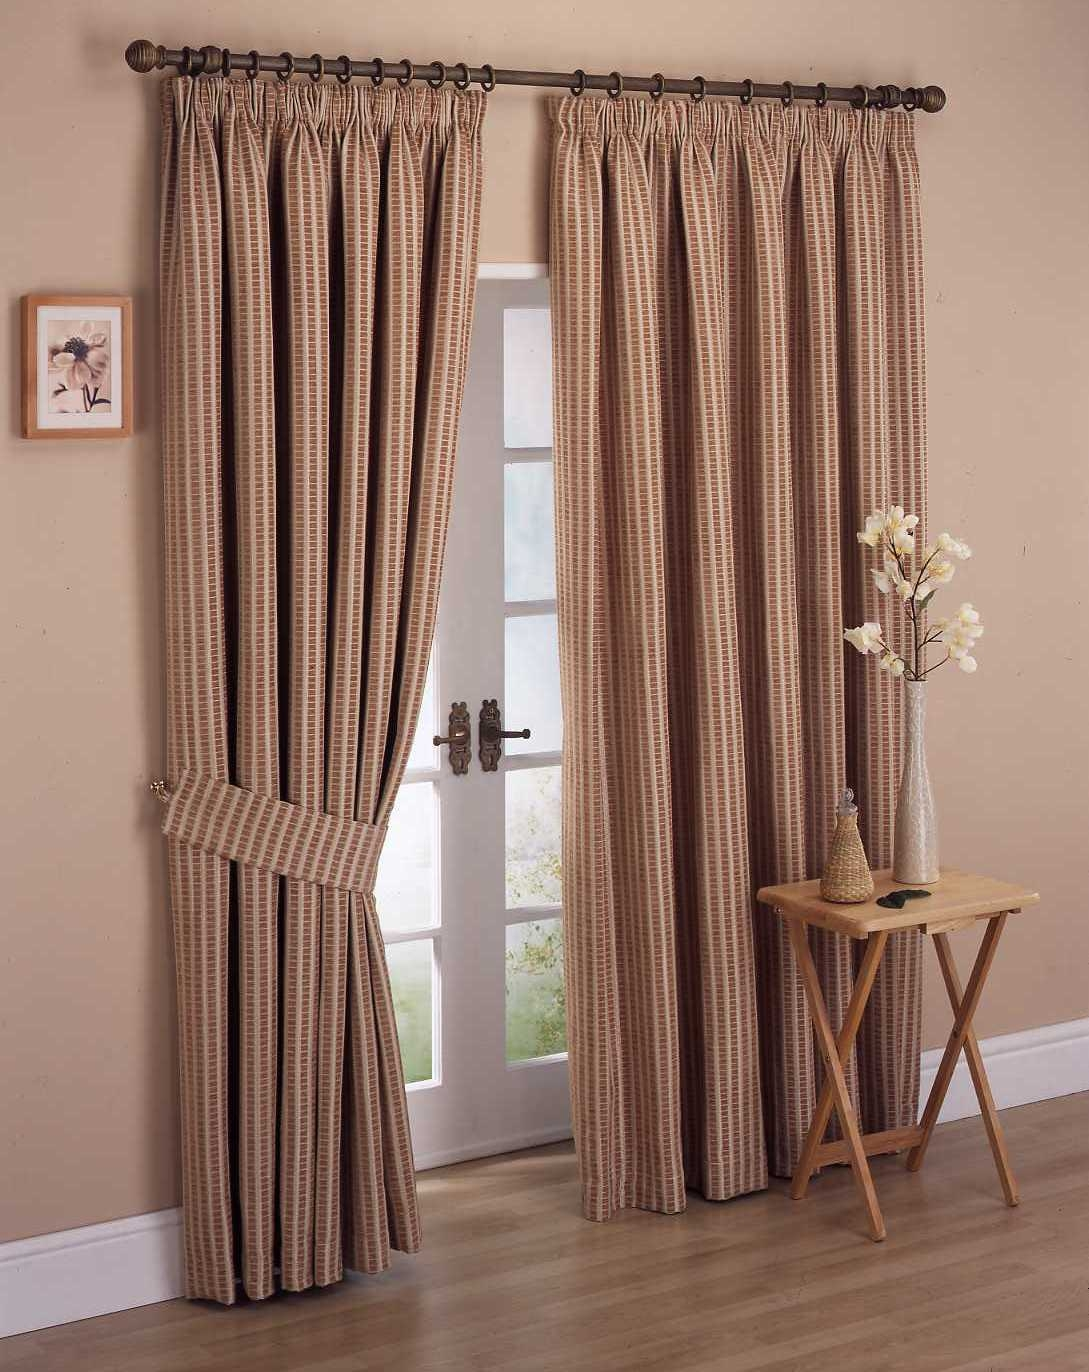 Fresh Door Curtain Panel 72 18021 With Doorway Curtains (Image 23 of 25)